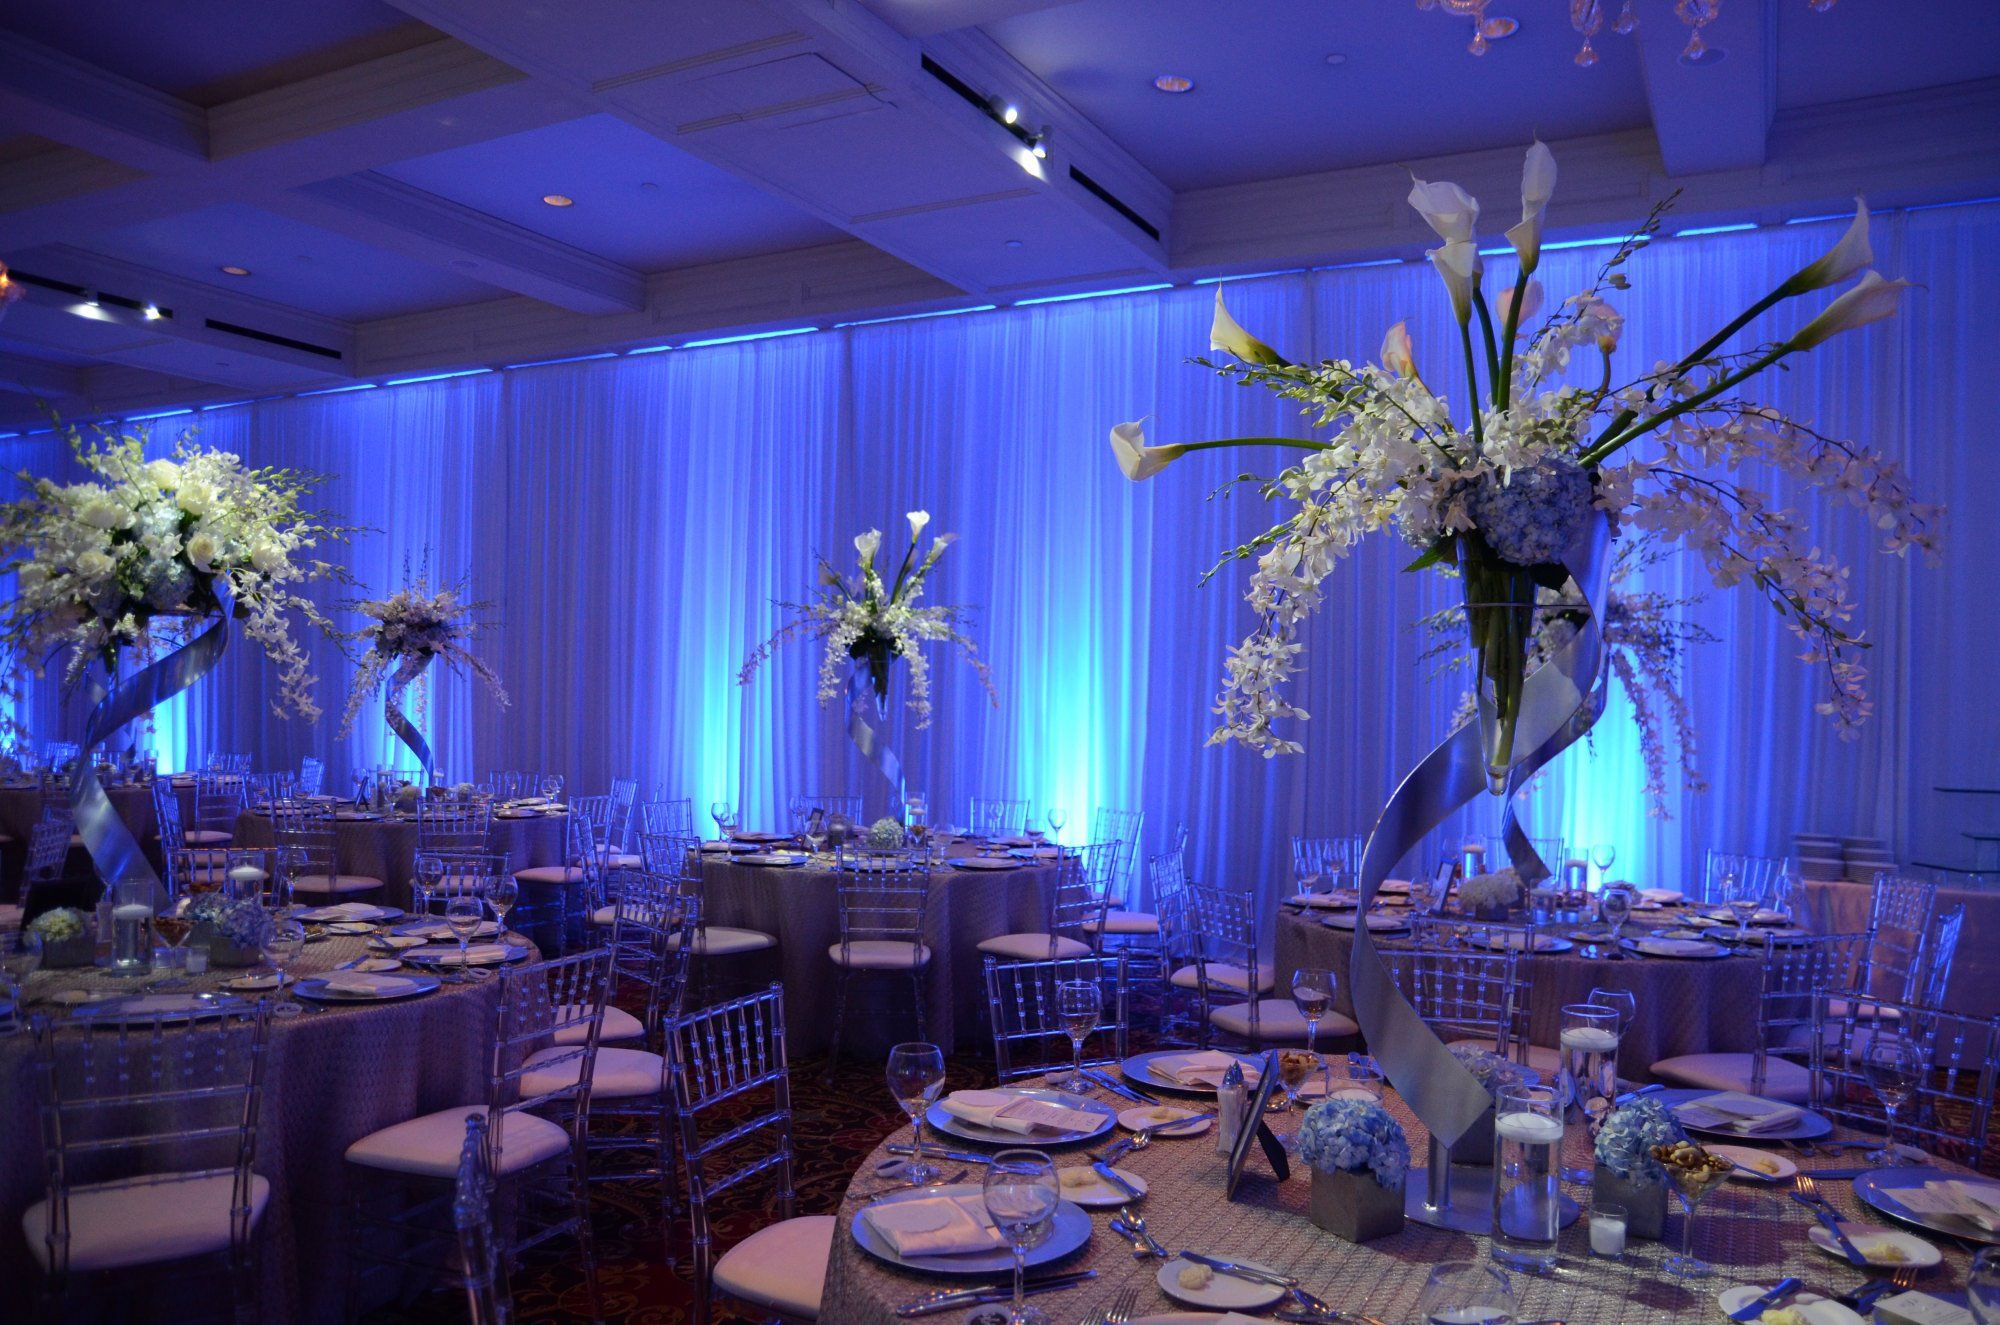 chair cover rental michigan grey nursery led uplighting service for weddings and